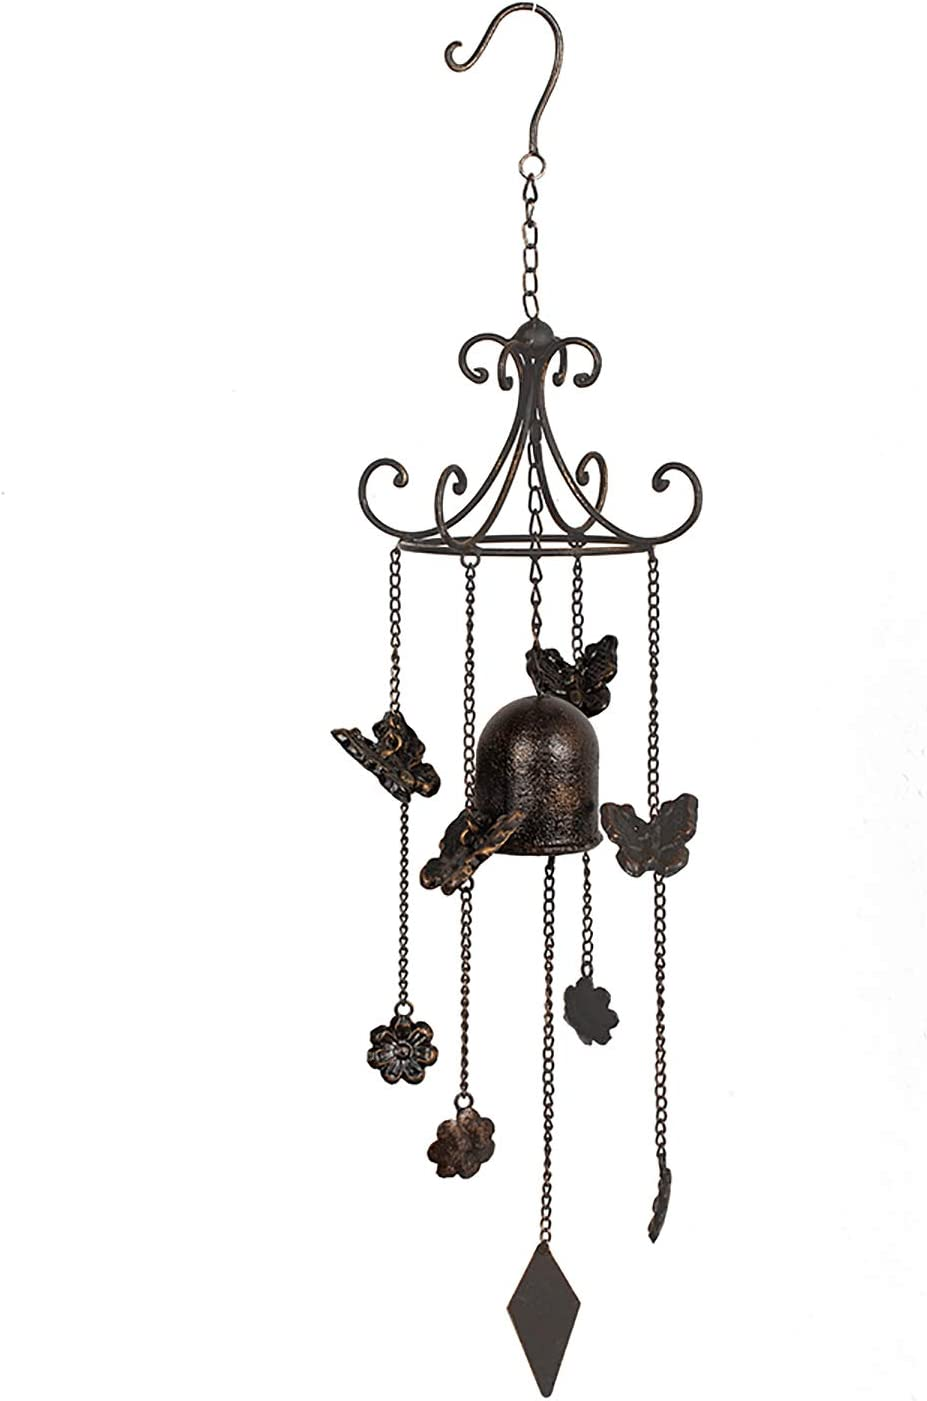 MOCOME Butterfly and Flowers Wind Chime with Bell, Outdoor Cast Iron Windchimes Heavy Duty, Antique Hanging Decor for Garden,Yard,Patio((Black,Copper)